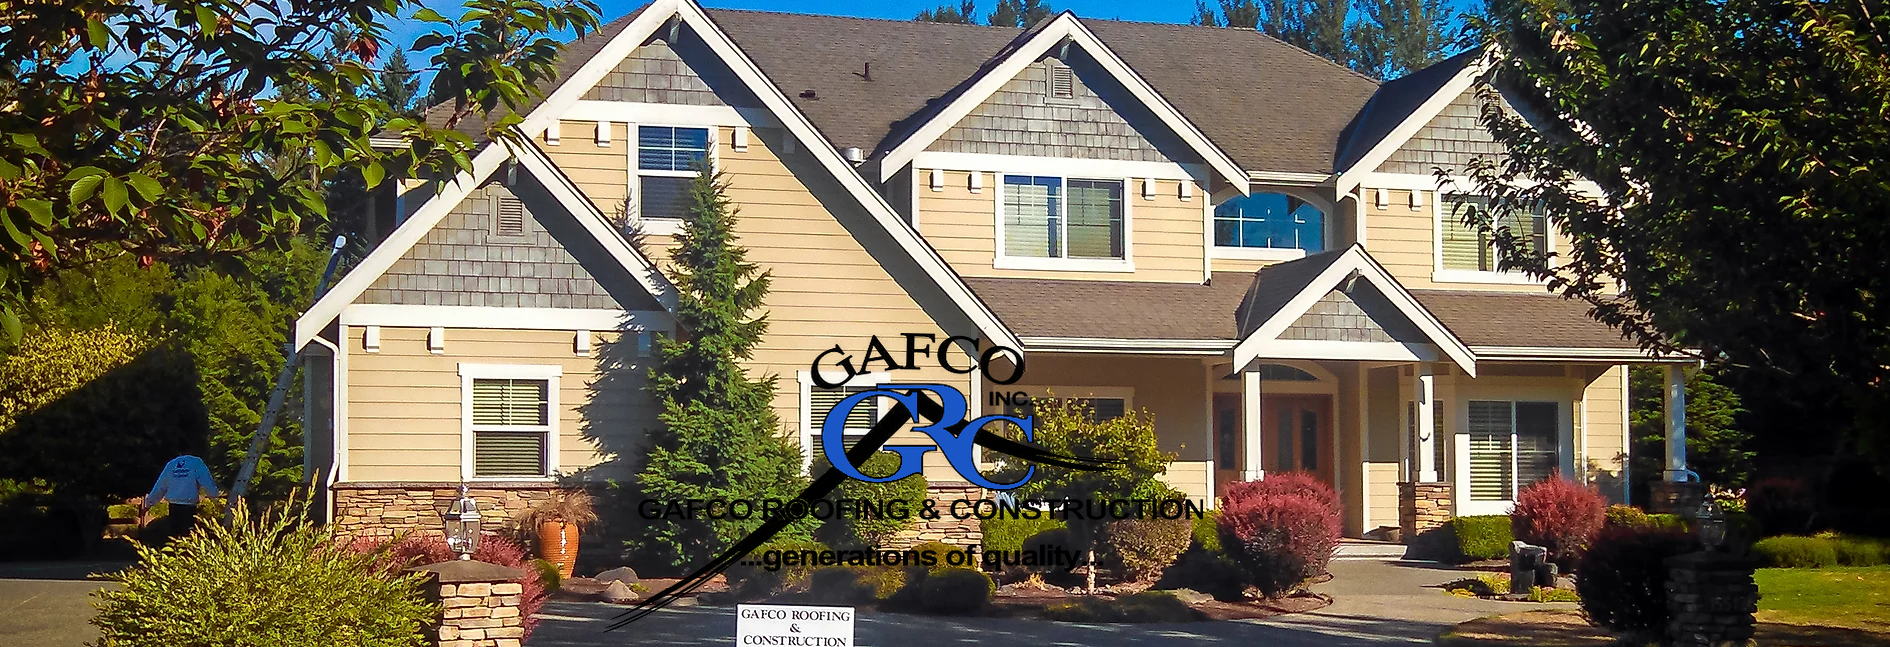 Gafco Roofing & Construction in Bonney Lake, WA banner image